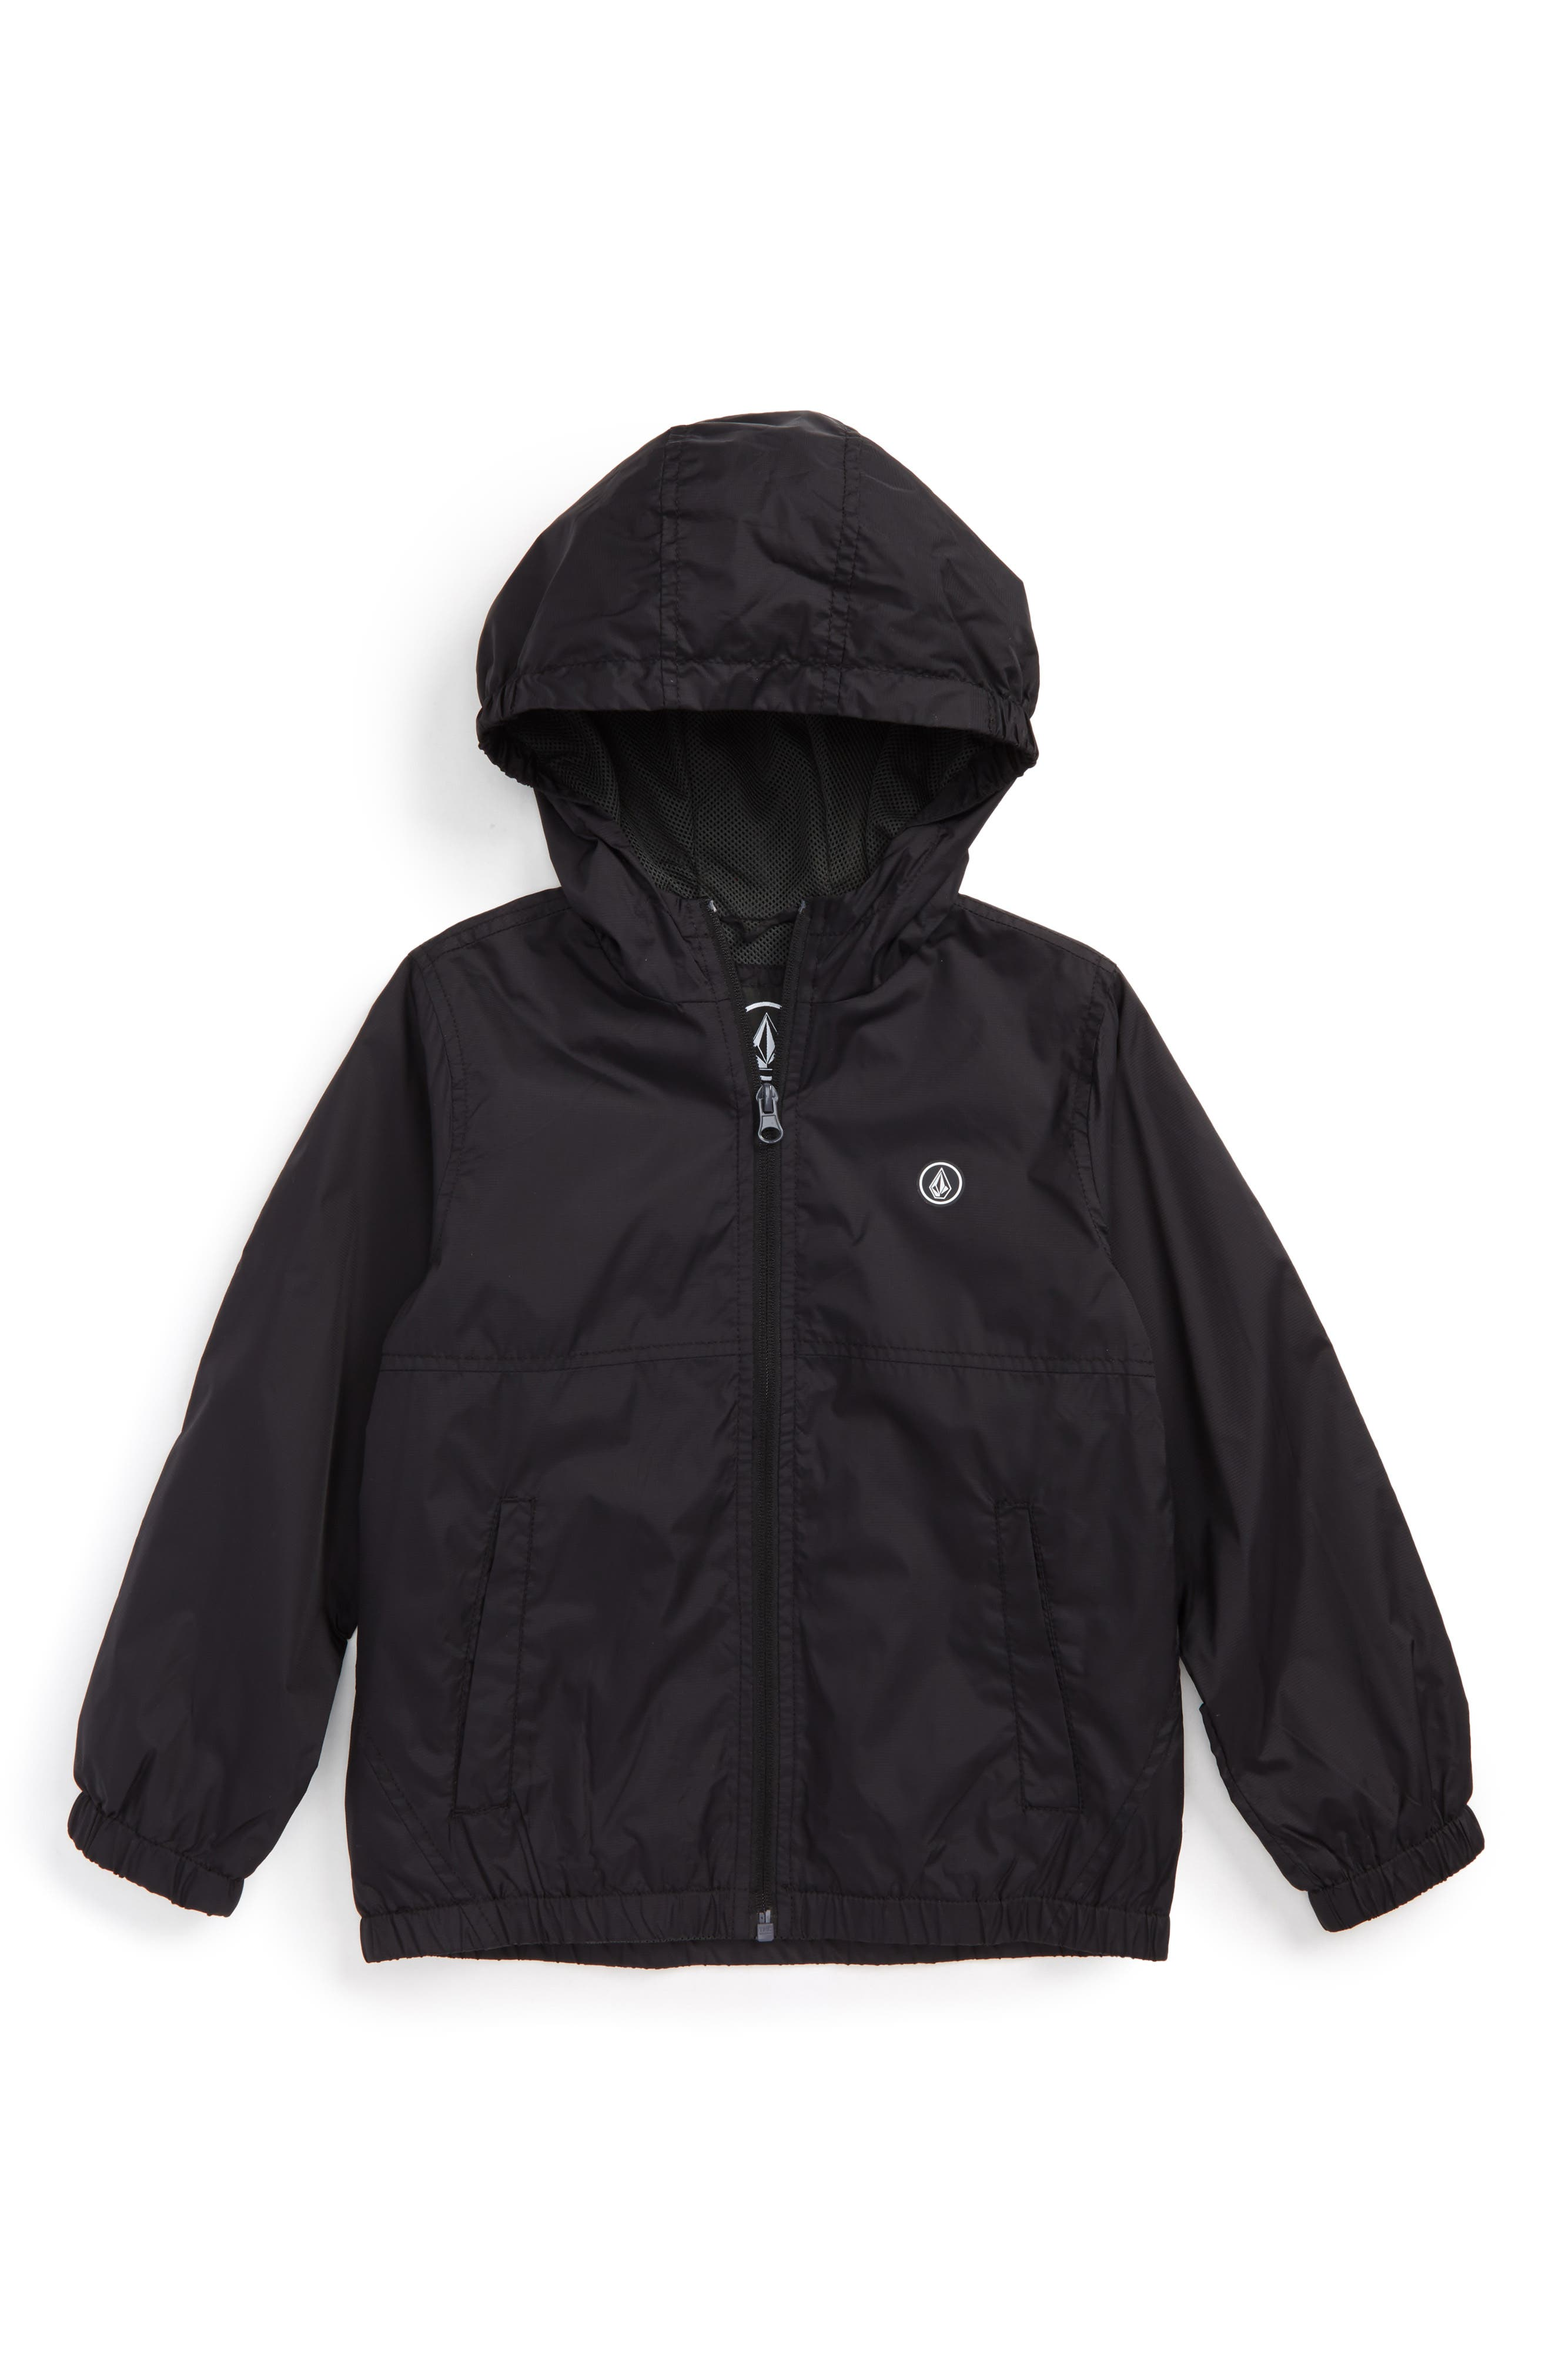 Ermont Hooded Nylon Jacket,                         Main,                         color, Black